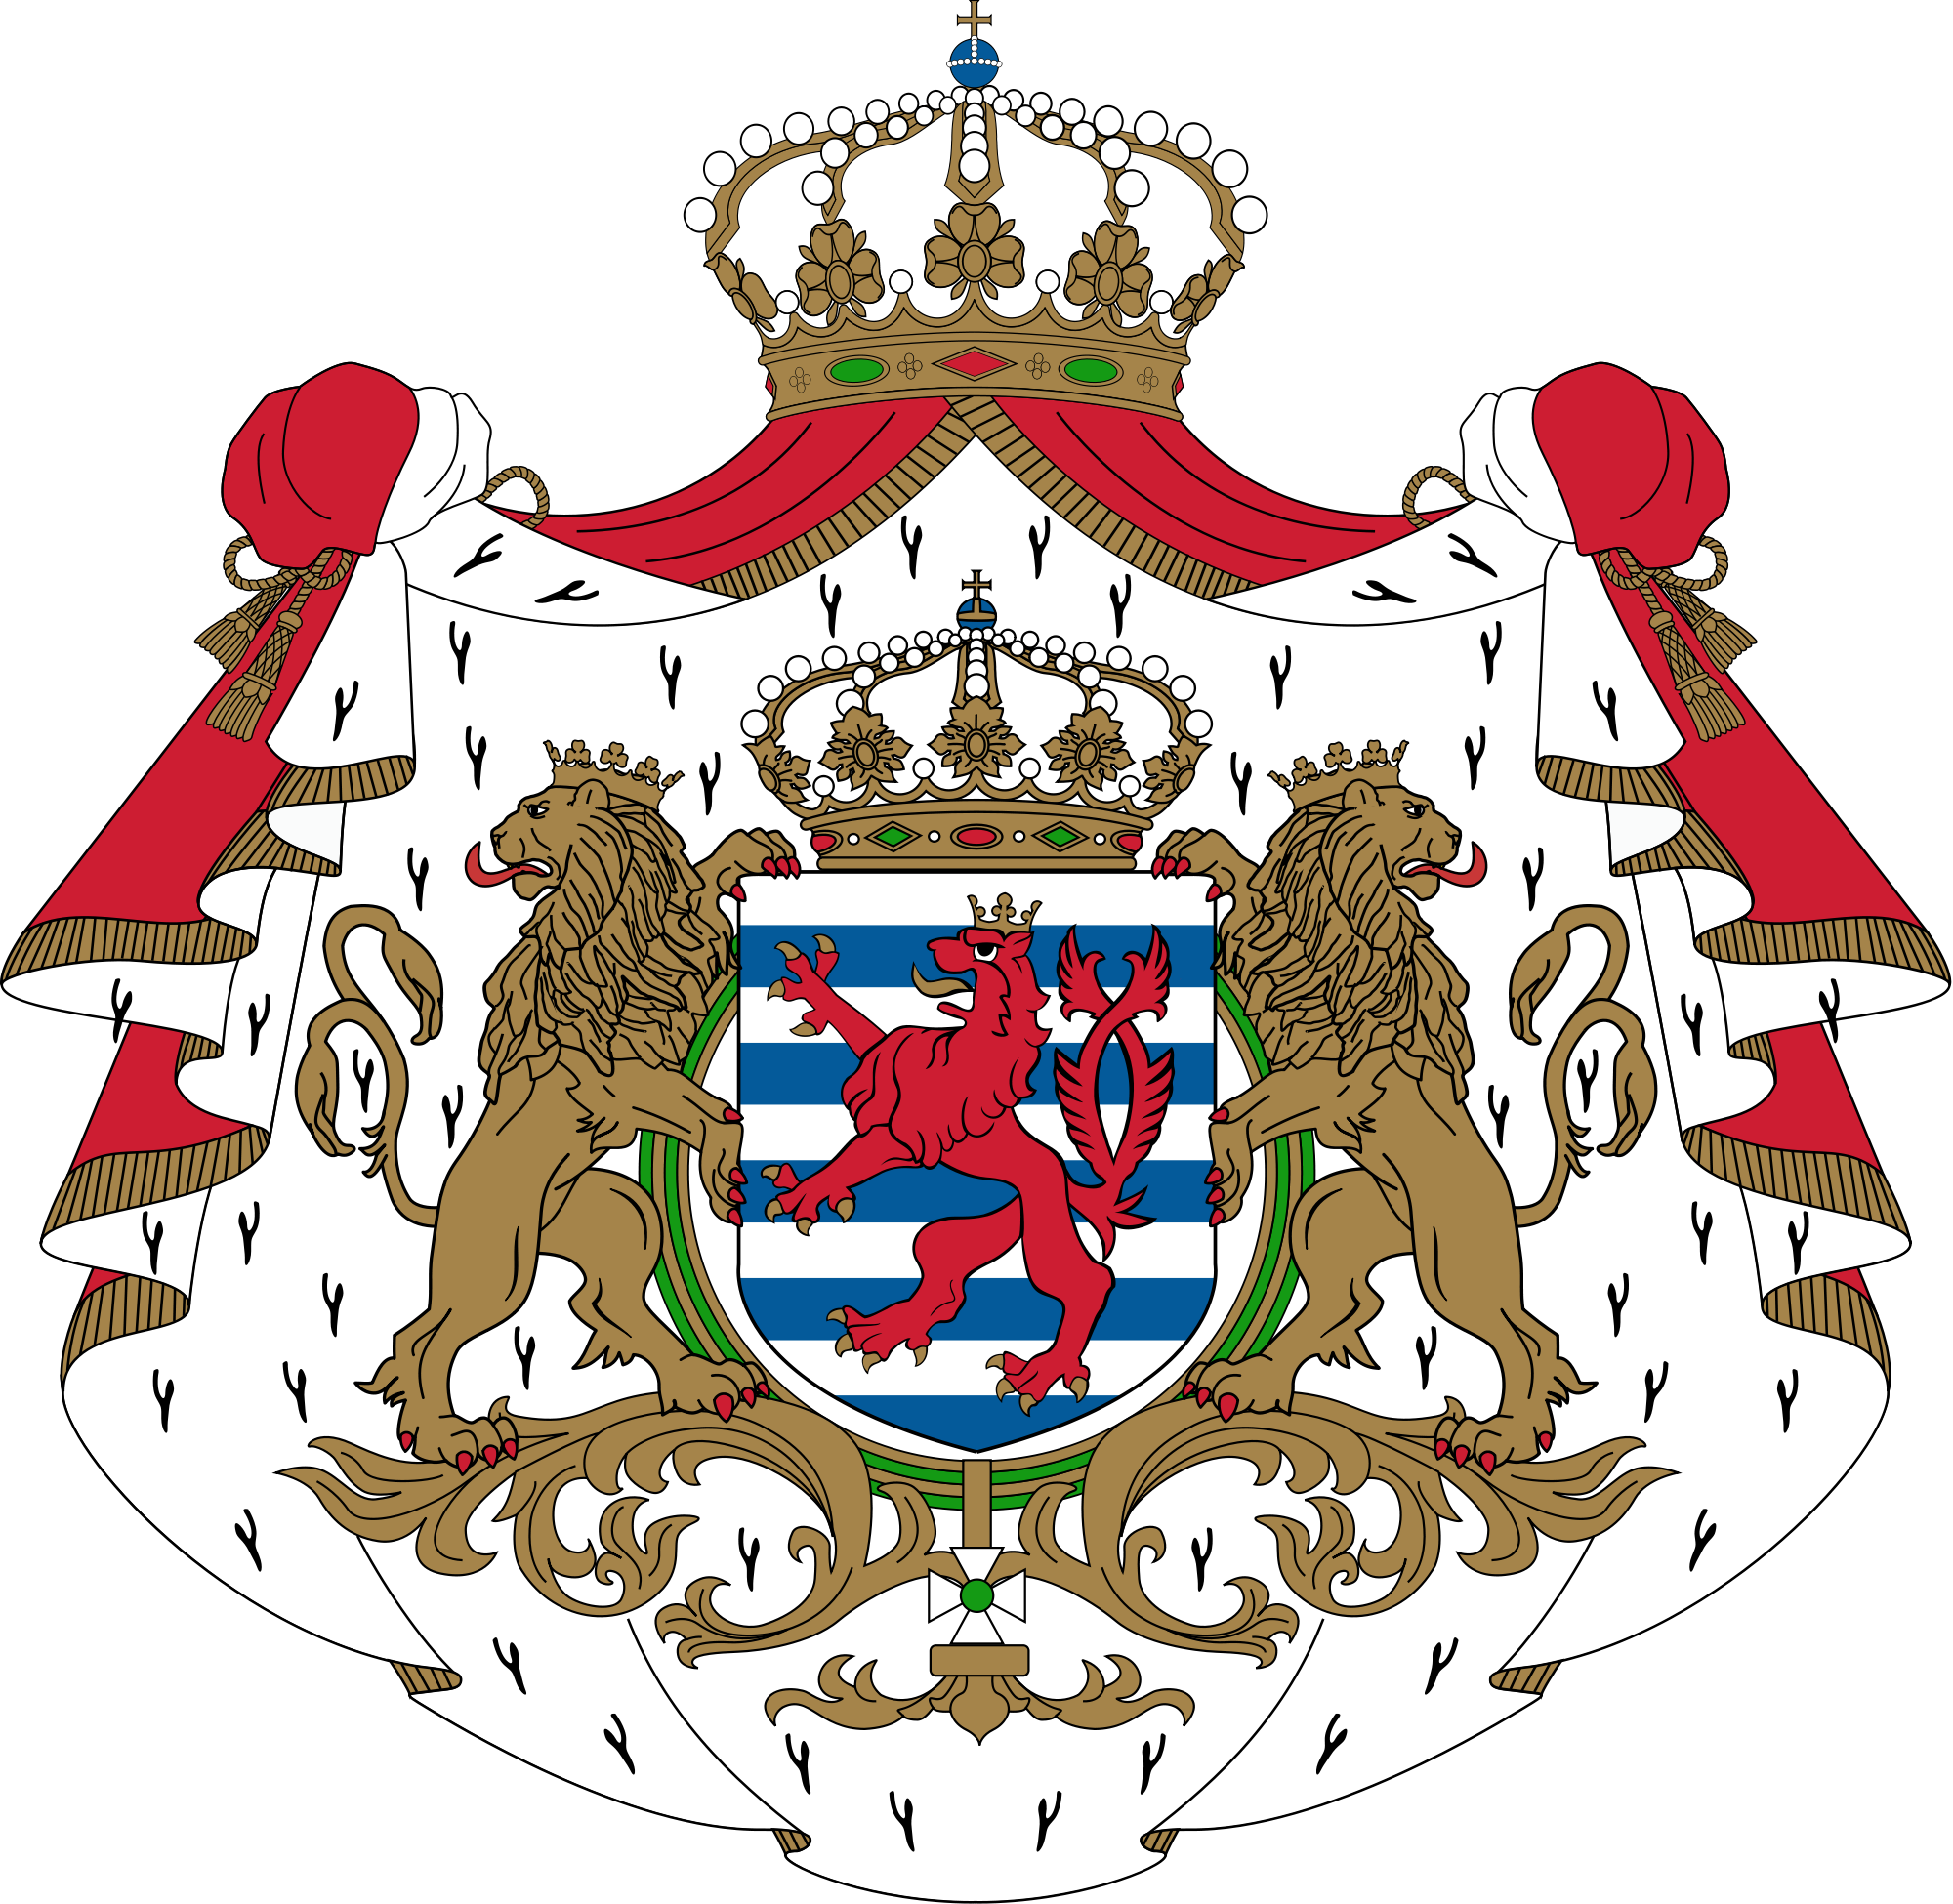 Emblem of Luxembourg